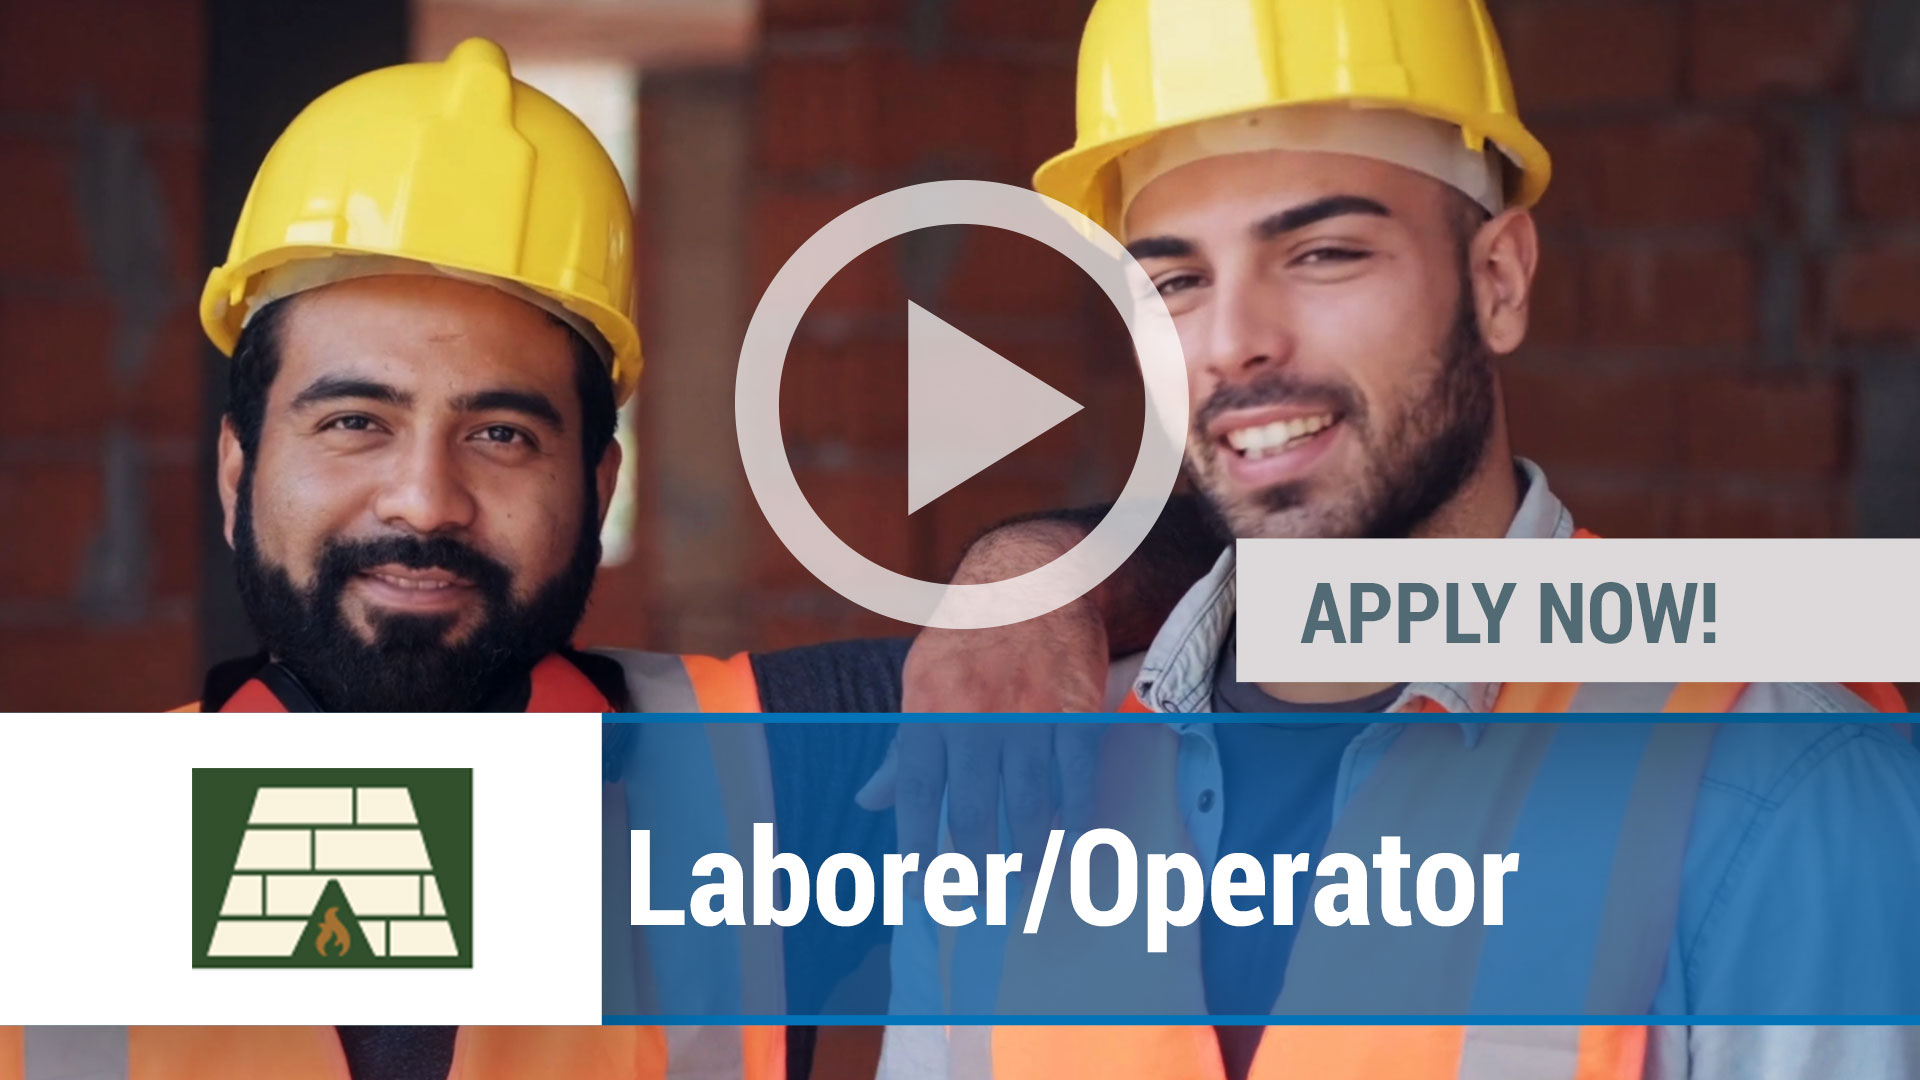 Watch our careers video for available job opening laborer_operator in State College, PA, USA